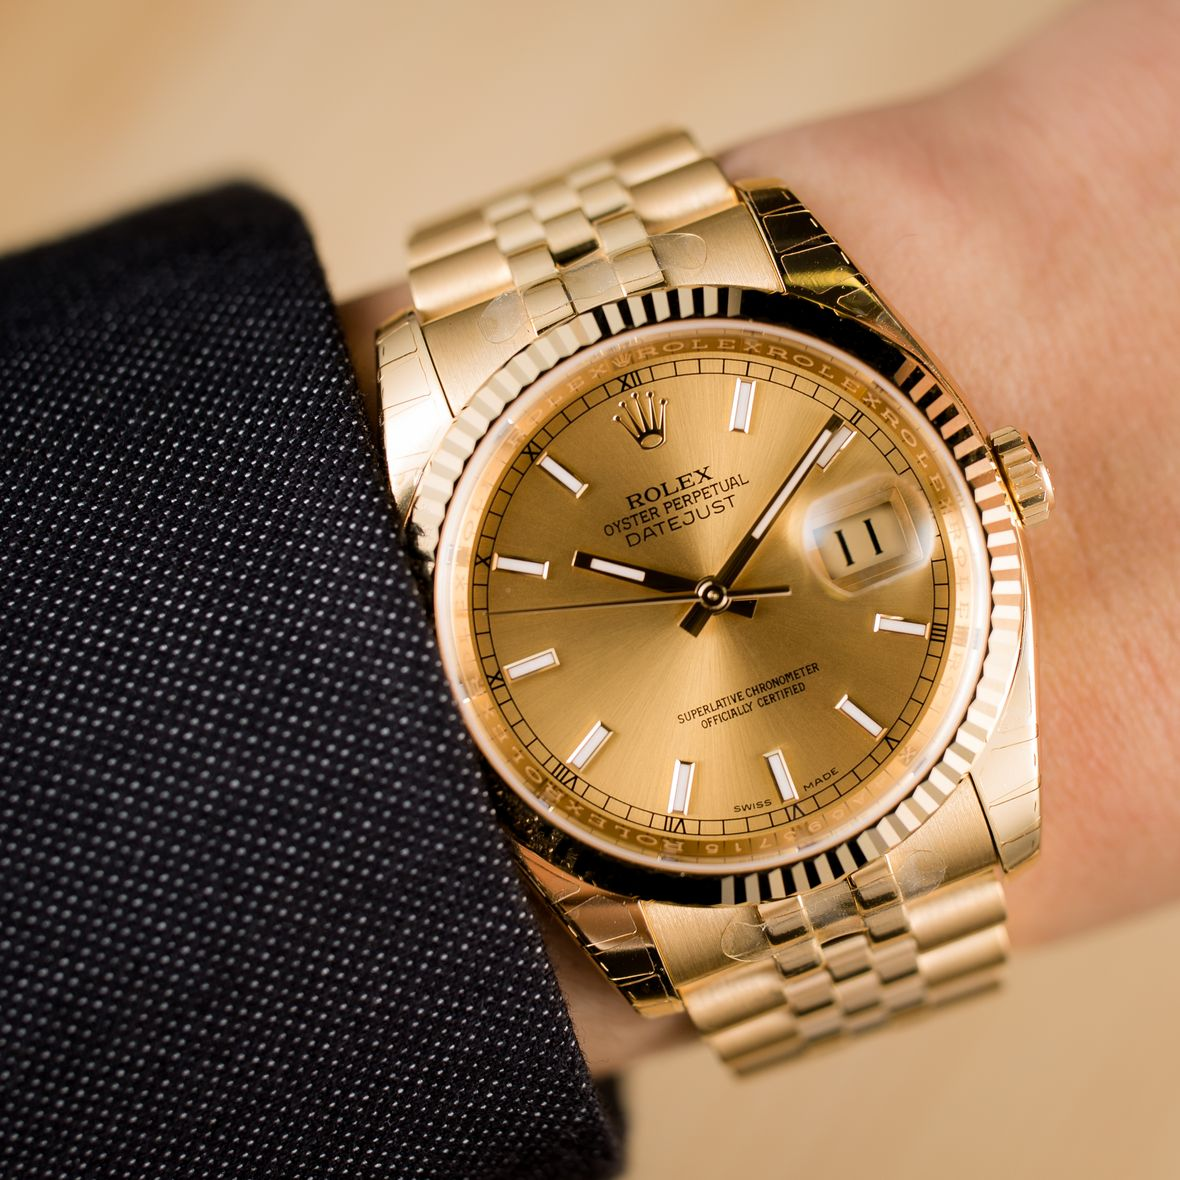 Rolex Datejust 116238 Review and Buying Guide